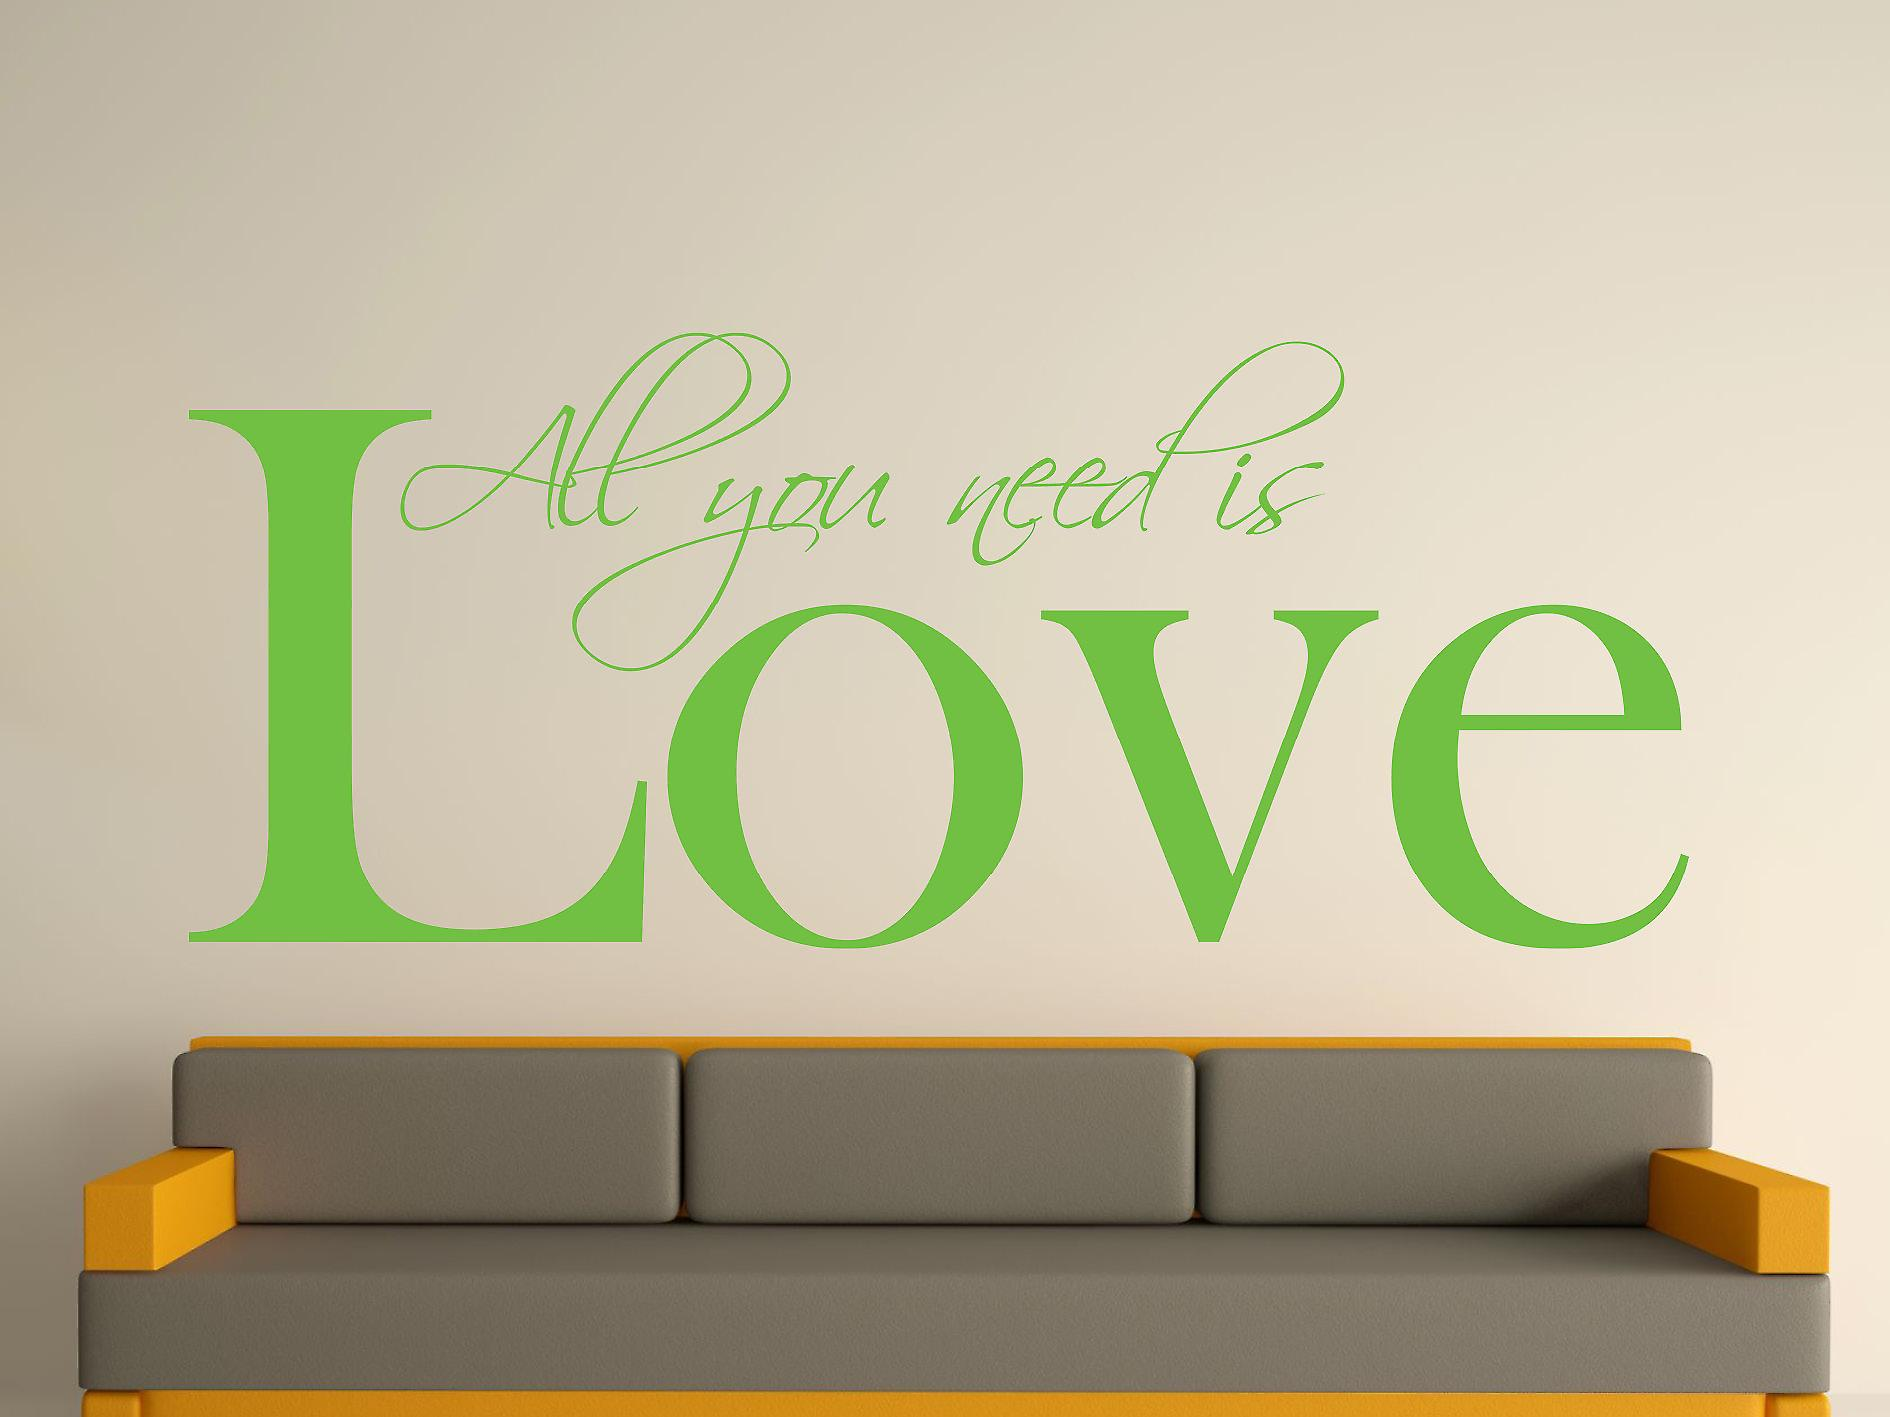 All You Need Wall Art Sticker - Apple Green